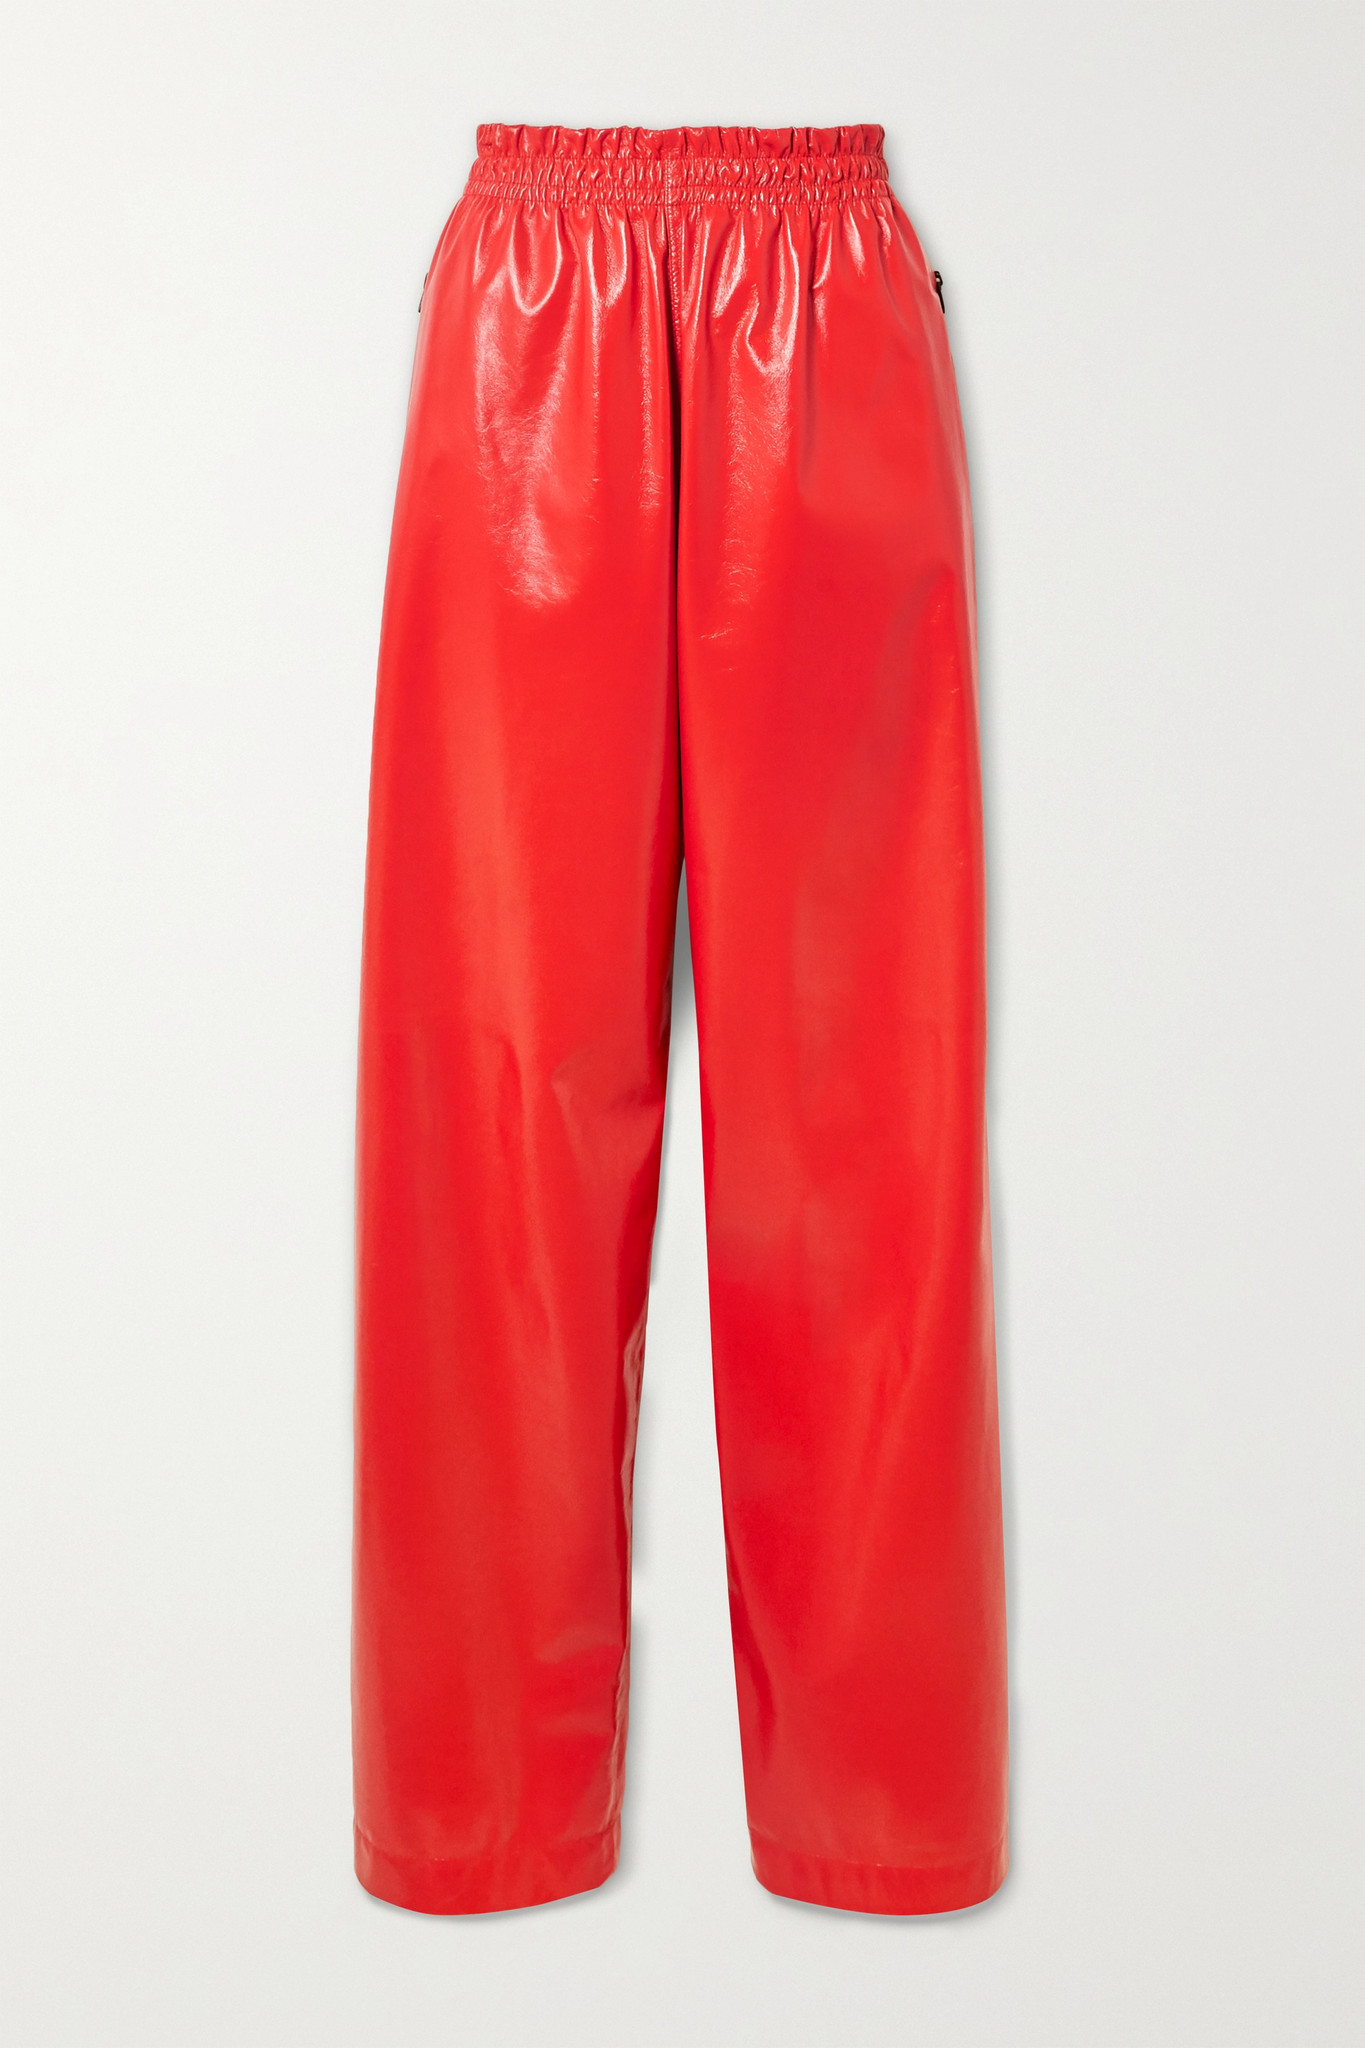 BOTTEGA VENETA - Crinkled Glossed-leather Wide-leg Pants - Red - medium